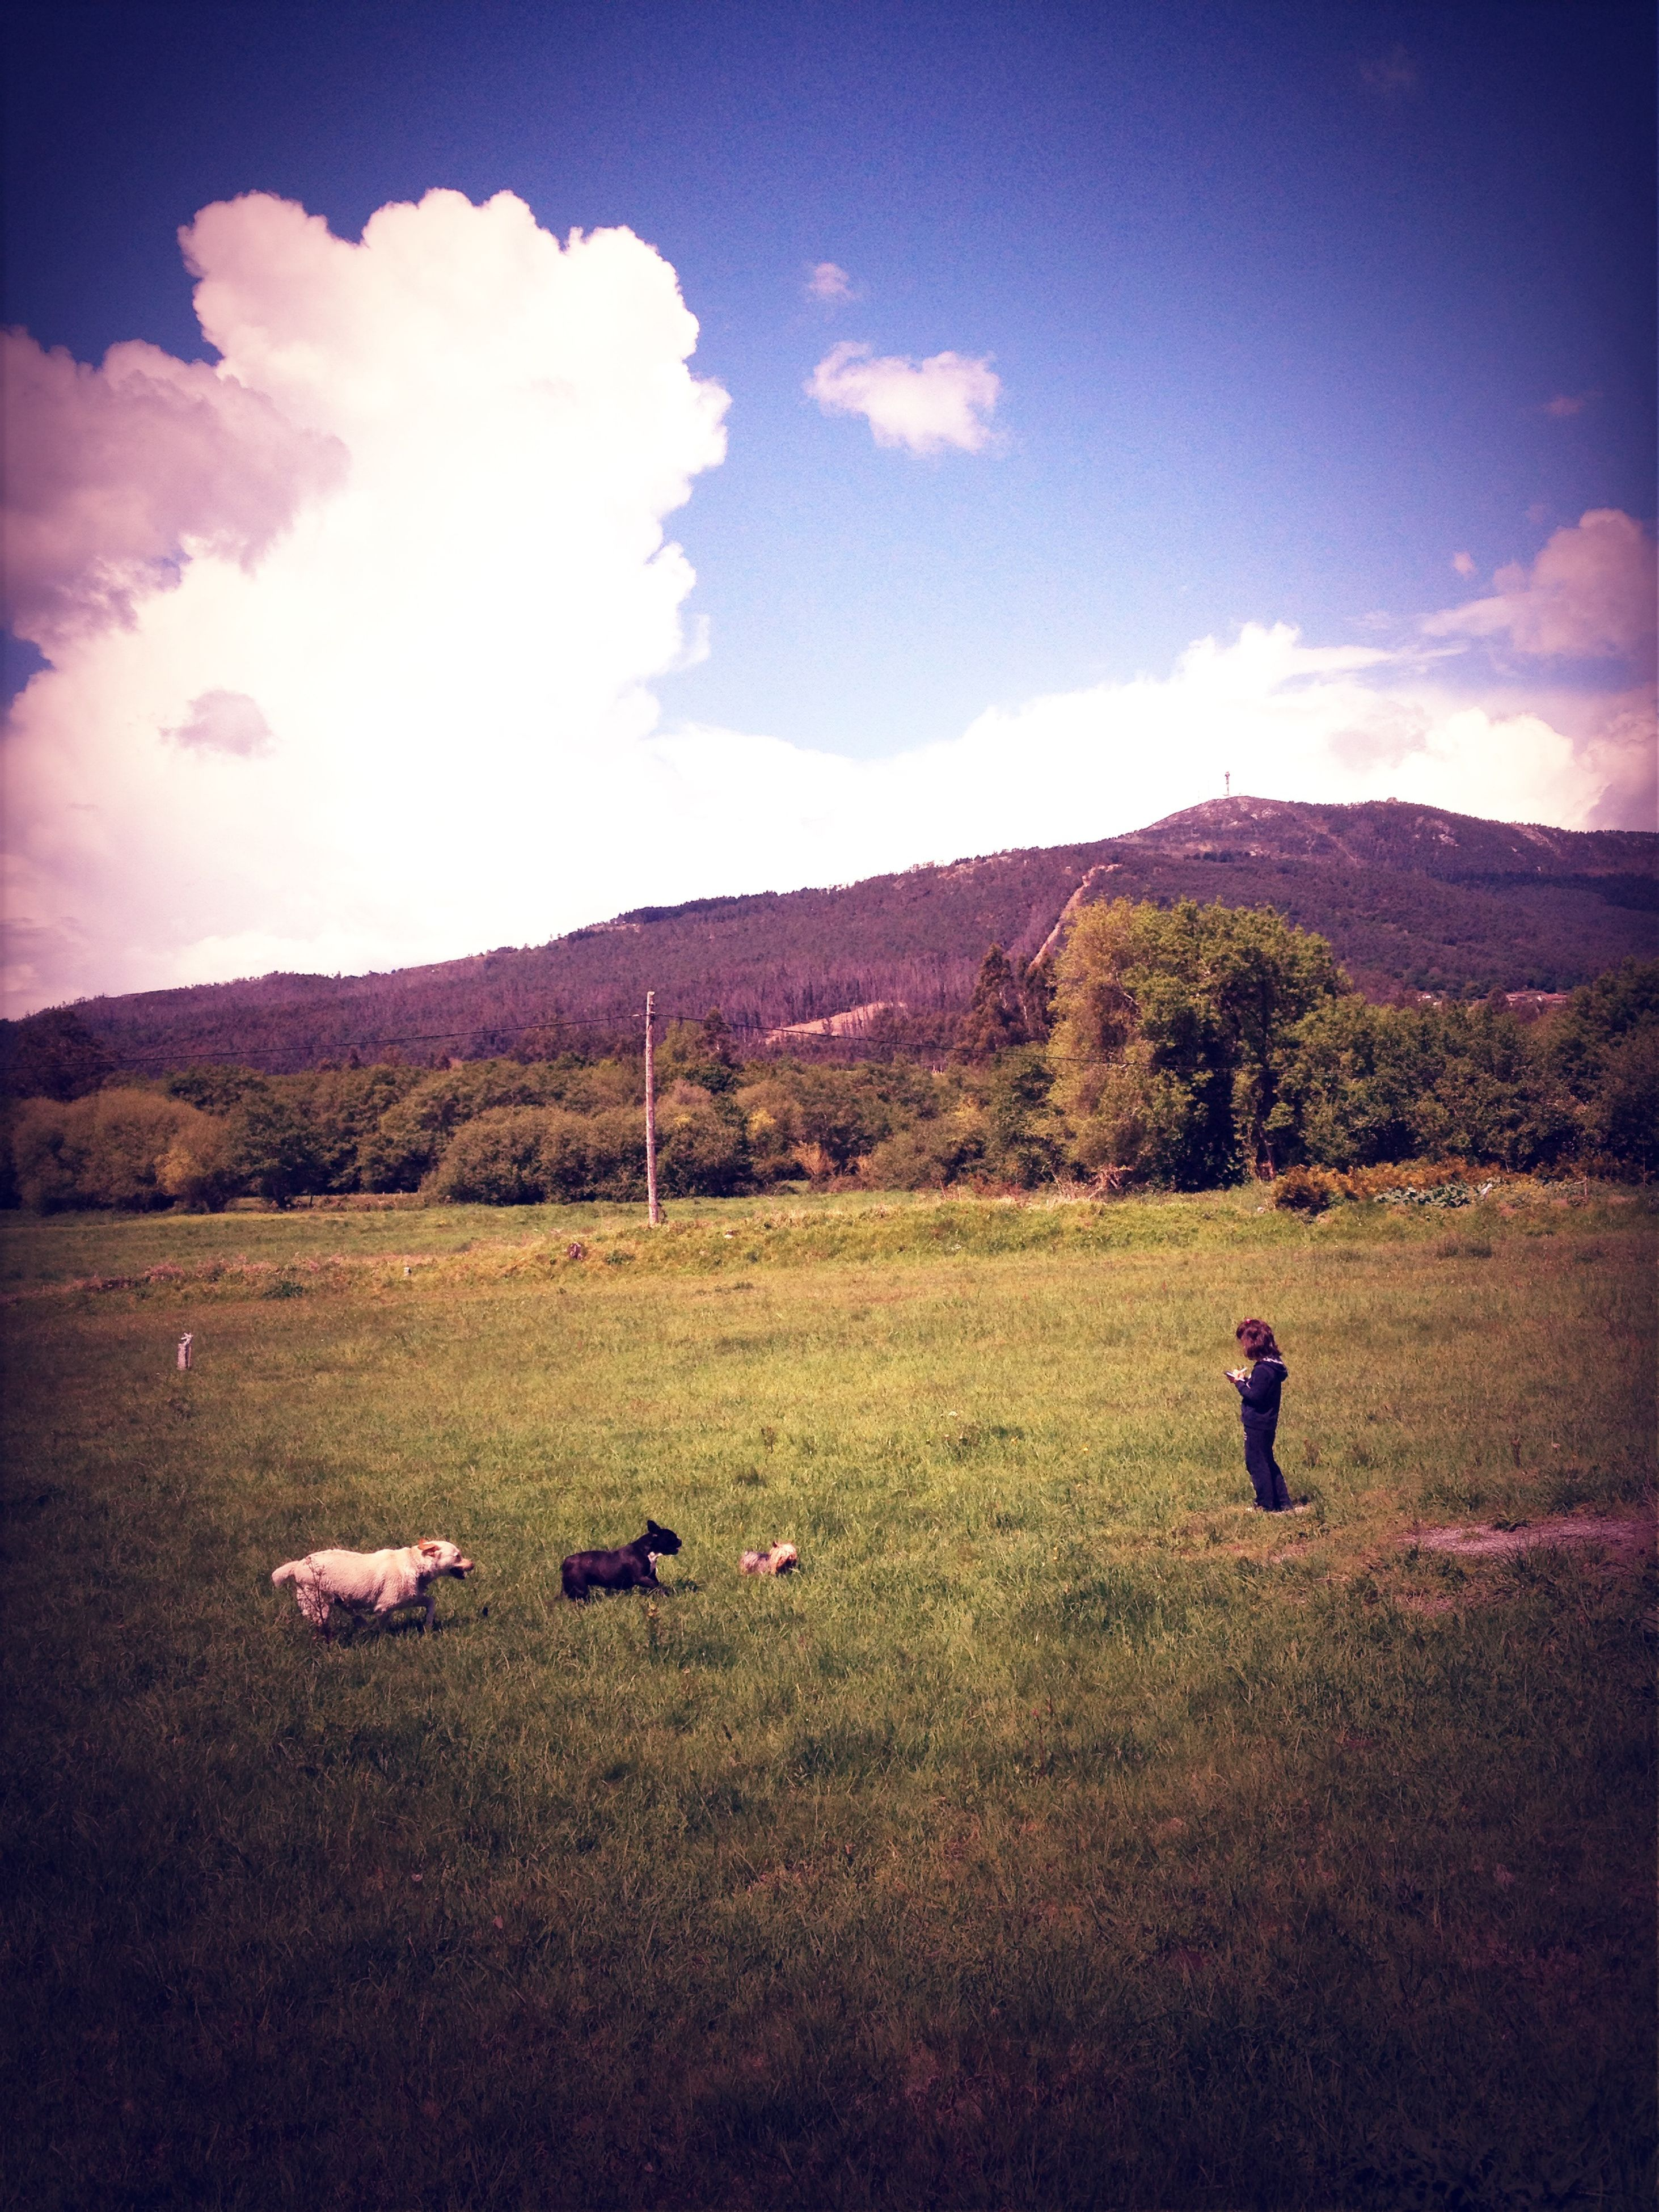 sky, mountain, domestic animals, landscape, grass, animal themes, tranquil scene, cloud - sky, field, tranquility, scenics, nature, beauty in nature, mountain range, cloud, mammal, dog, one animal, pets, full length